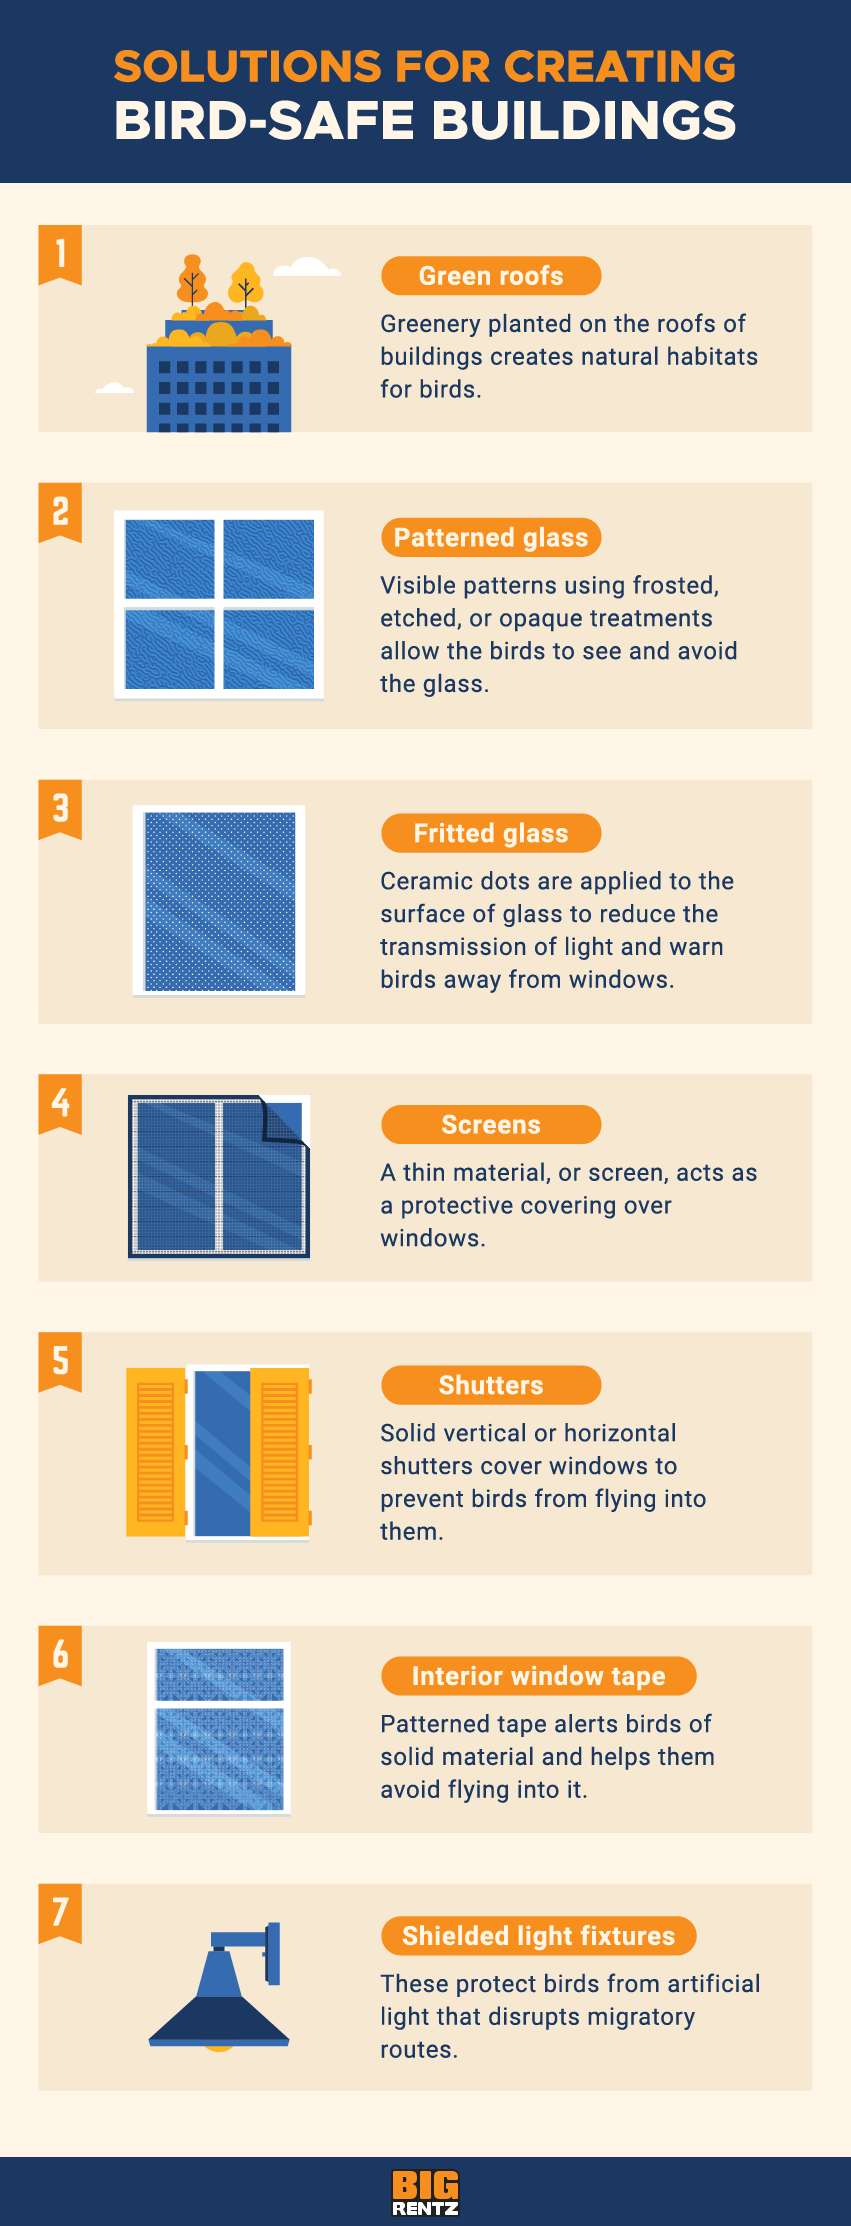 solutions for creating bird-safe buildings